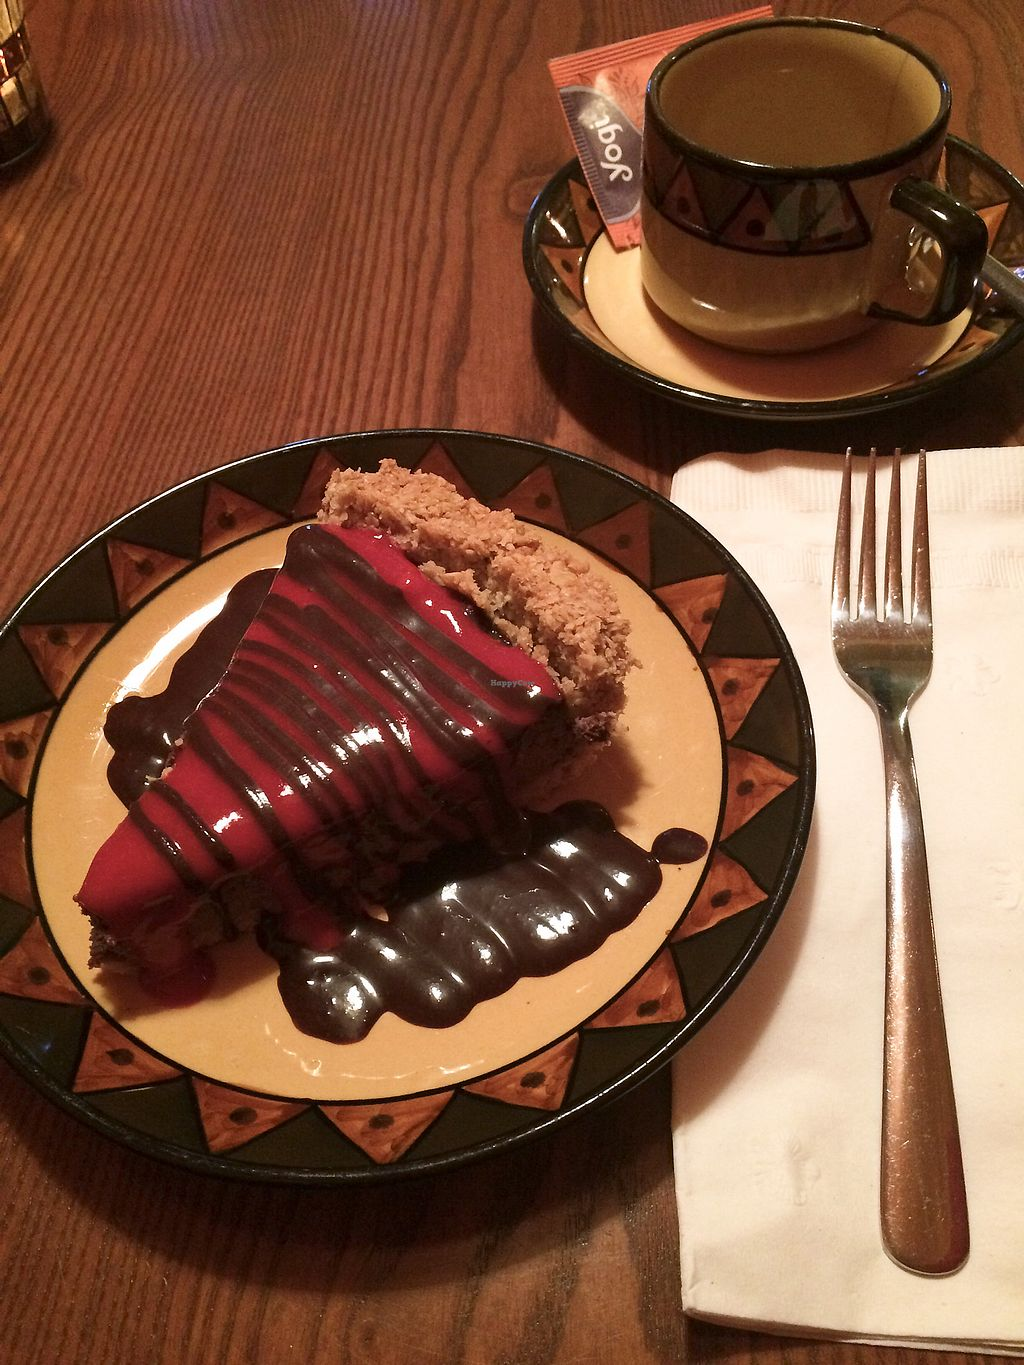 """Photo of Calactus Cafe  by <a href=""""/members/profile/MamaSinkins"""">MamaSinkins</a> <br/>Chocolate raspberry cream pie with chai tea <br/> April 4, 2018  - <a href='/contact/abuse/image/2916/380857'>Report</a>"""